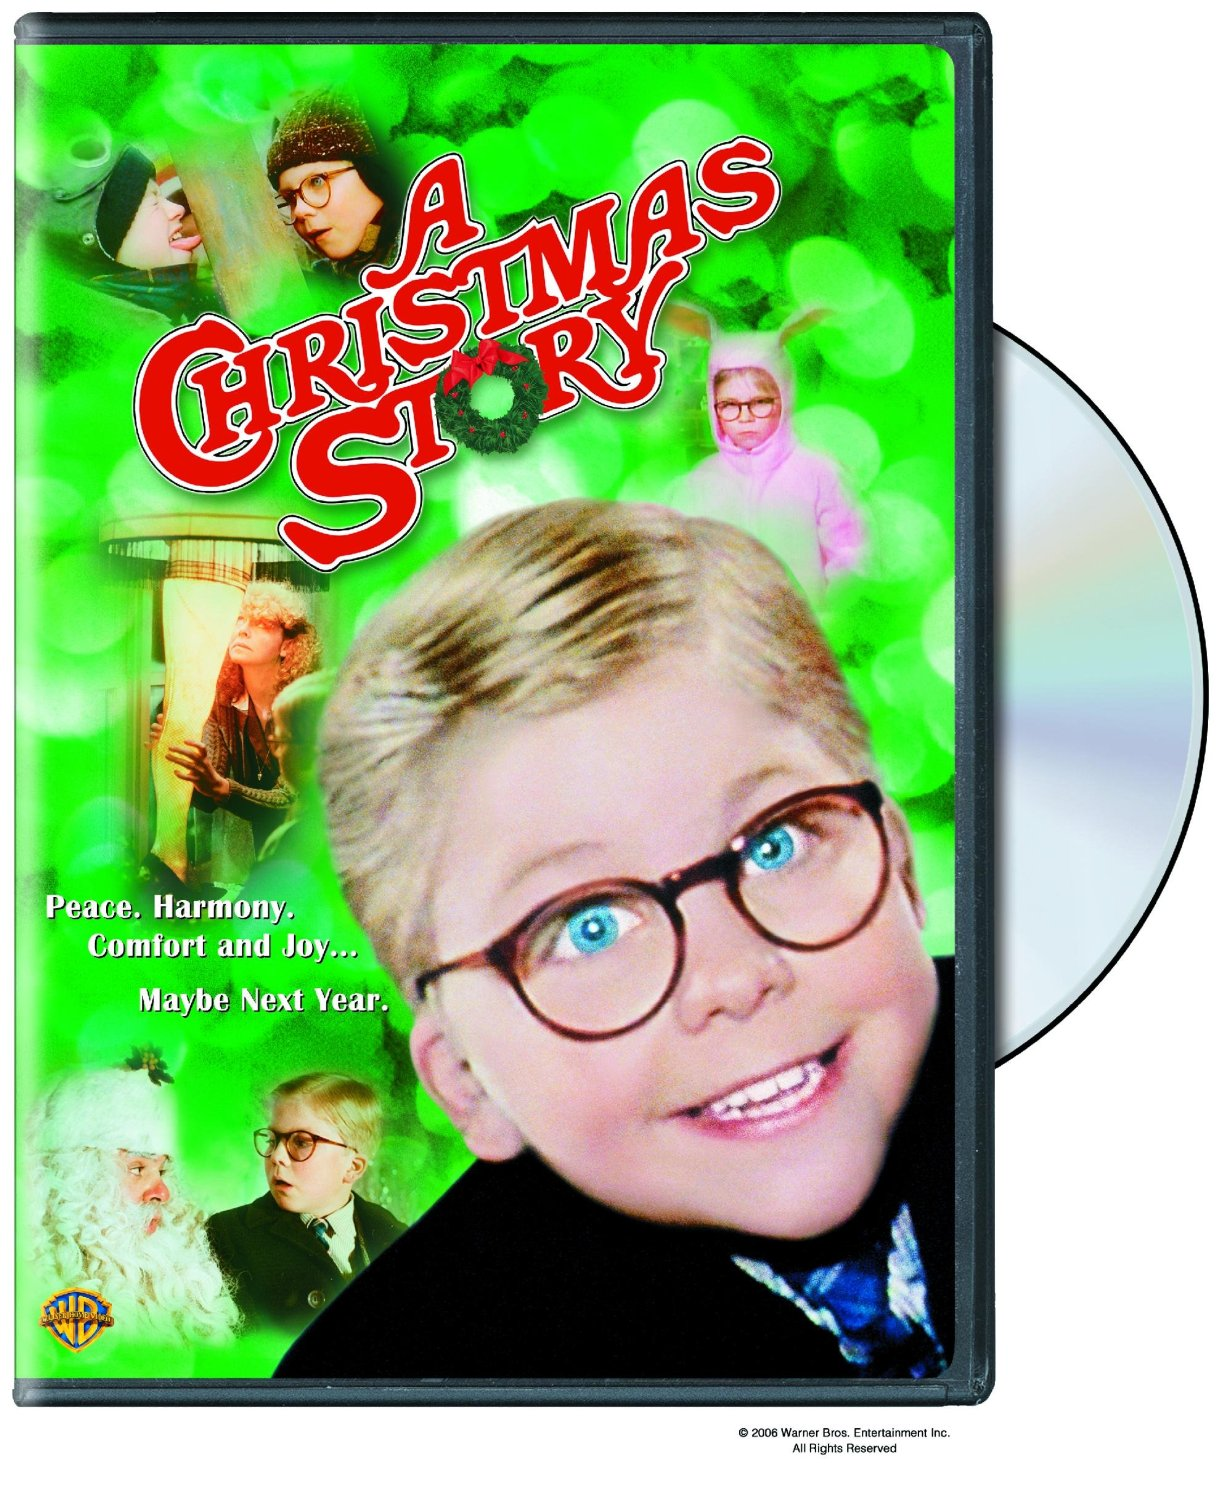 Best Christmas Movies Of All Time: Top 10 Christmas Movies